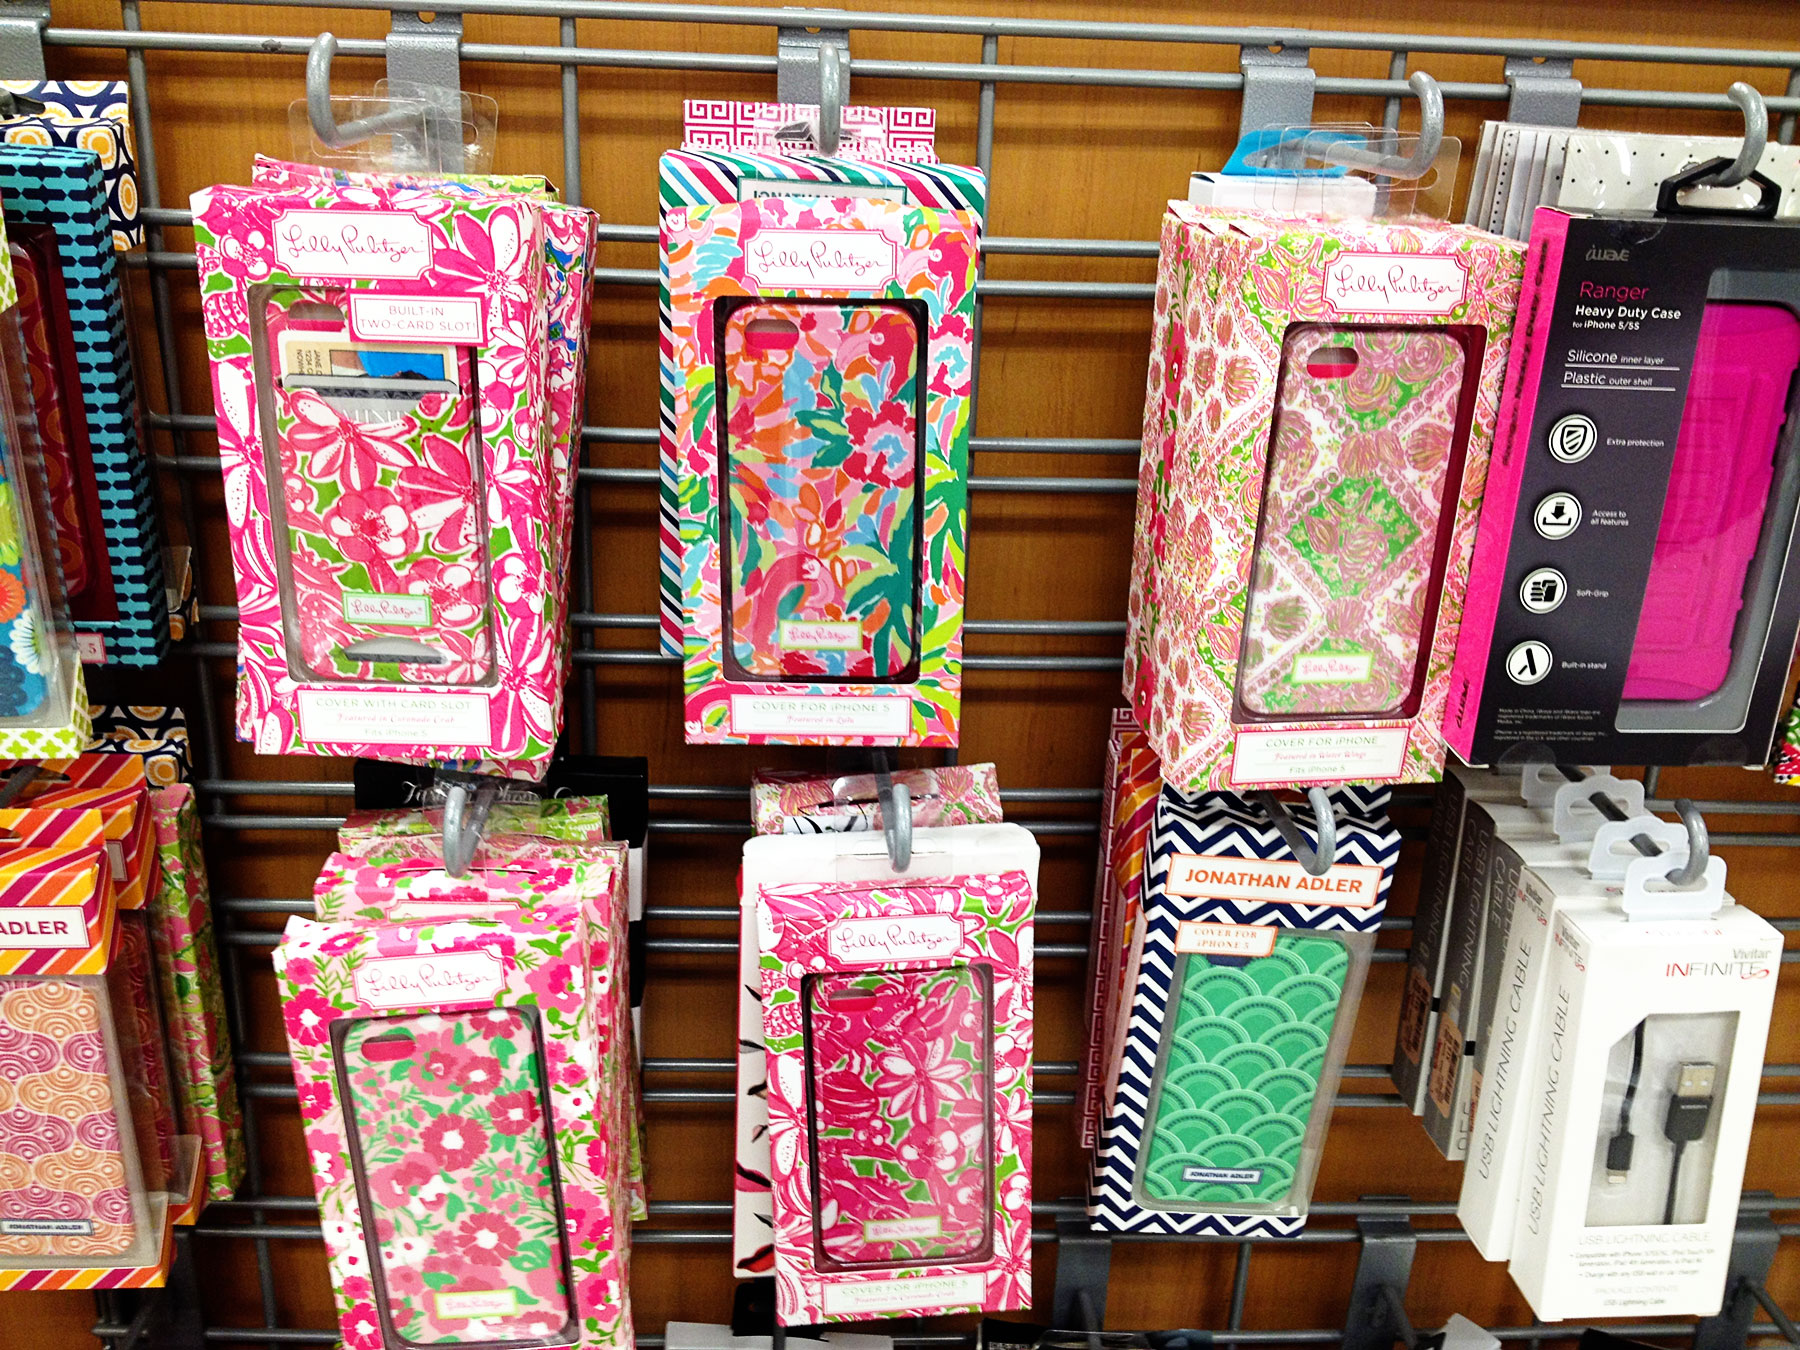 Vera Bradley Ipad Air Case | Iphone 5s Cases Lilly Pulitzer | Lilly Pulitzer Phone Case